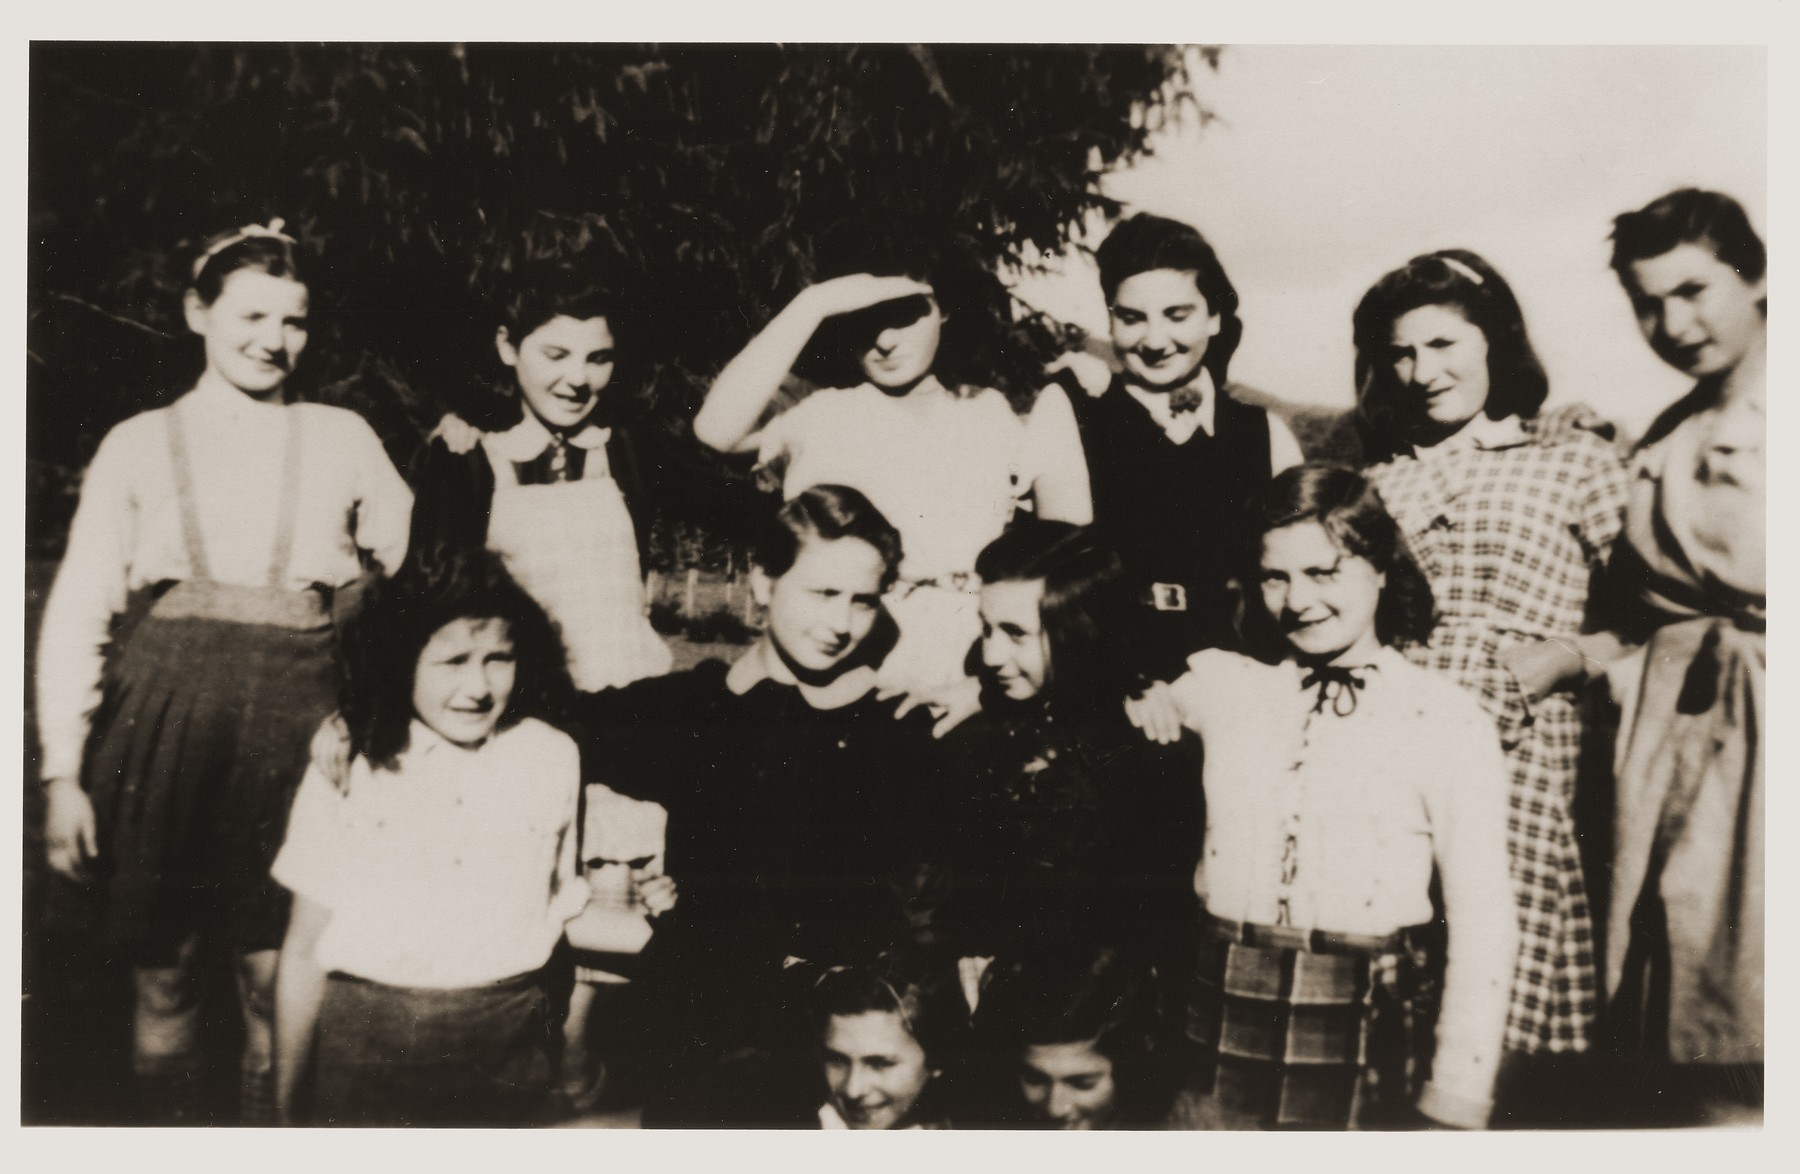 Group portrait of Jewish refugee children, who had been released from French internment camps, at the OSE [Oeuvre de secours aux enfants] home for religious girls at Le Couret.  Pictured are Dora, Lotte Michel, Hermine, Hanna Moses, Edith Rosenthal, Lydie, Litzi Menkes, Eva Tuchsznajder, Annie Fisher, Sophie and Inge.